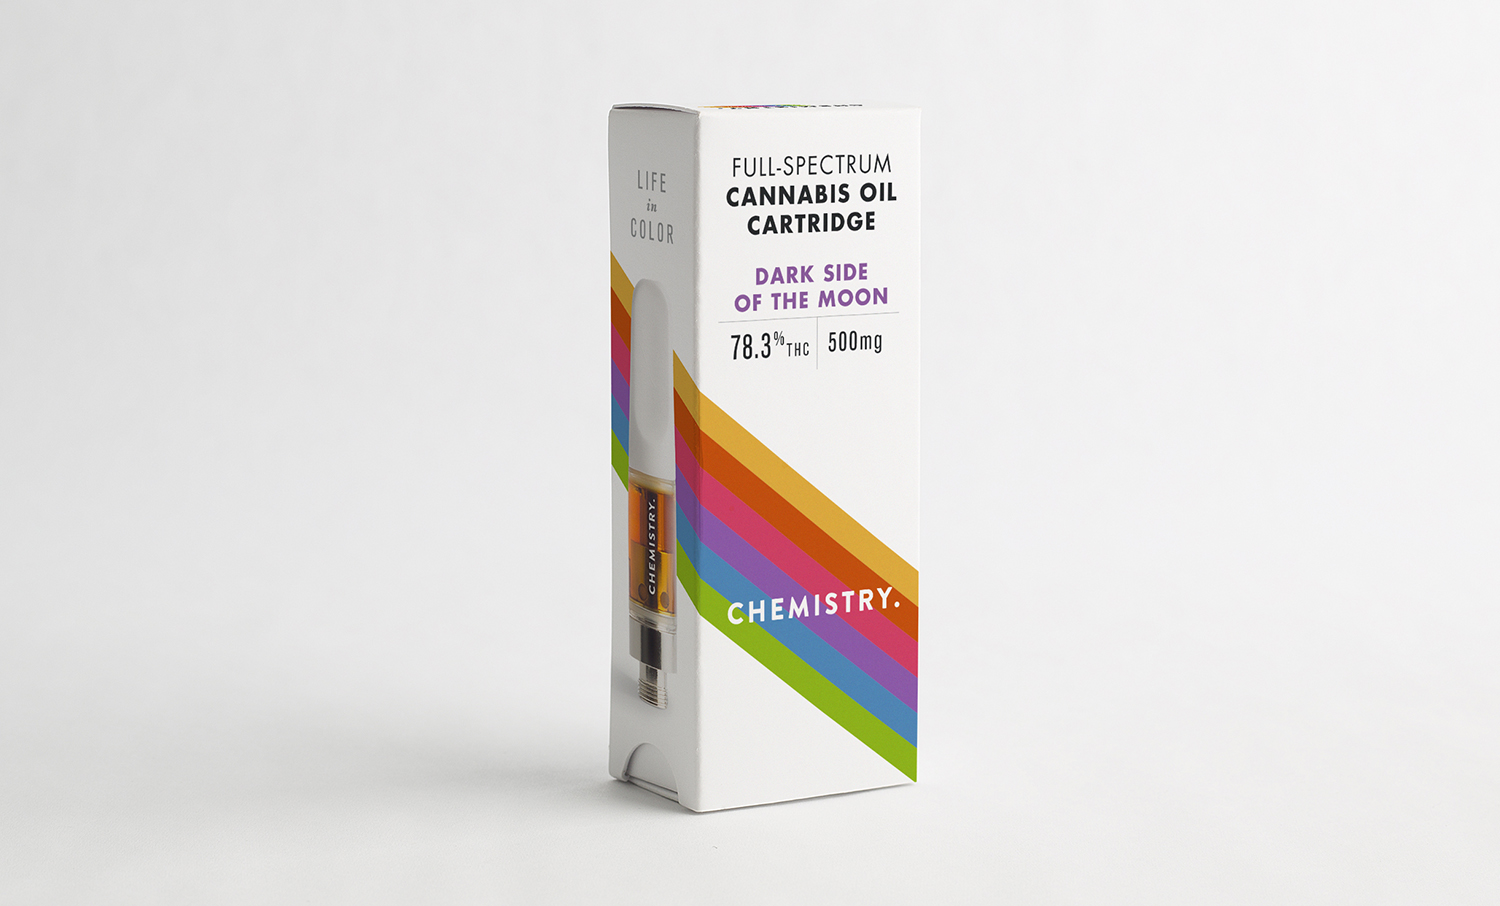 Chemistry Dark Side of the Moon Cannabis Vape Cartridge